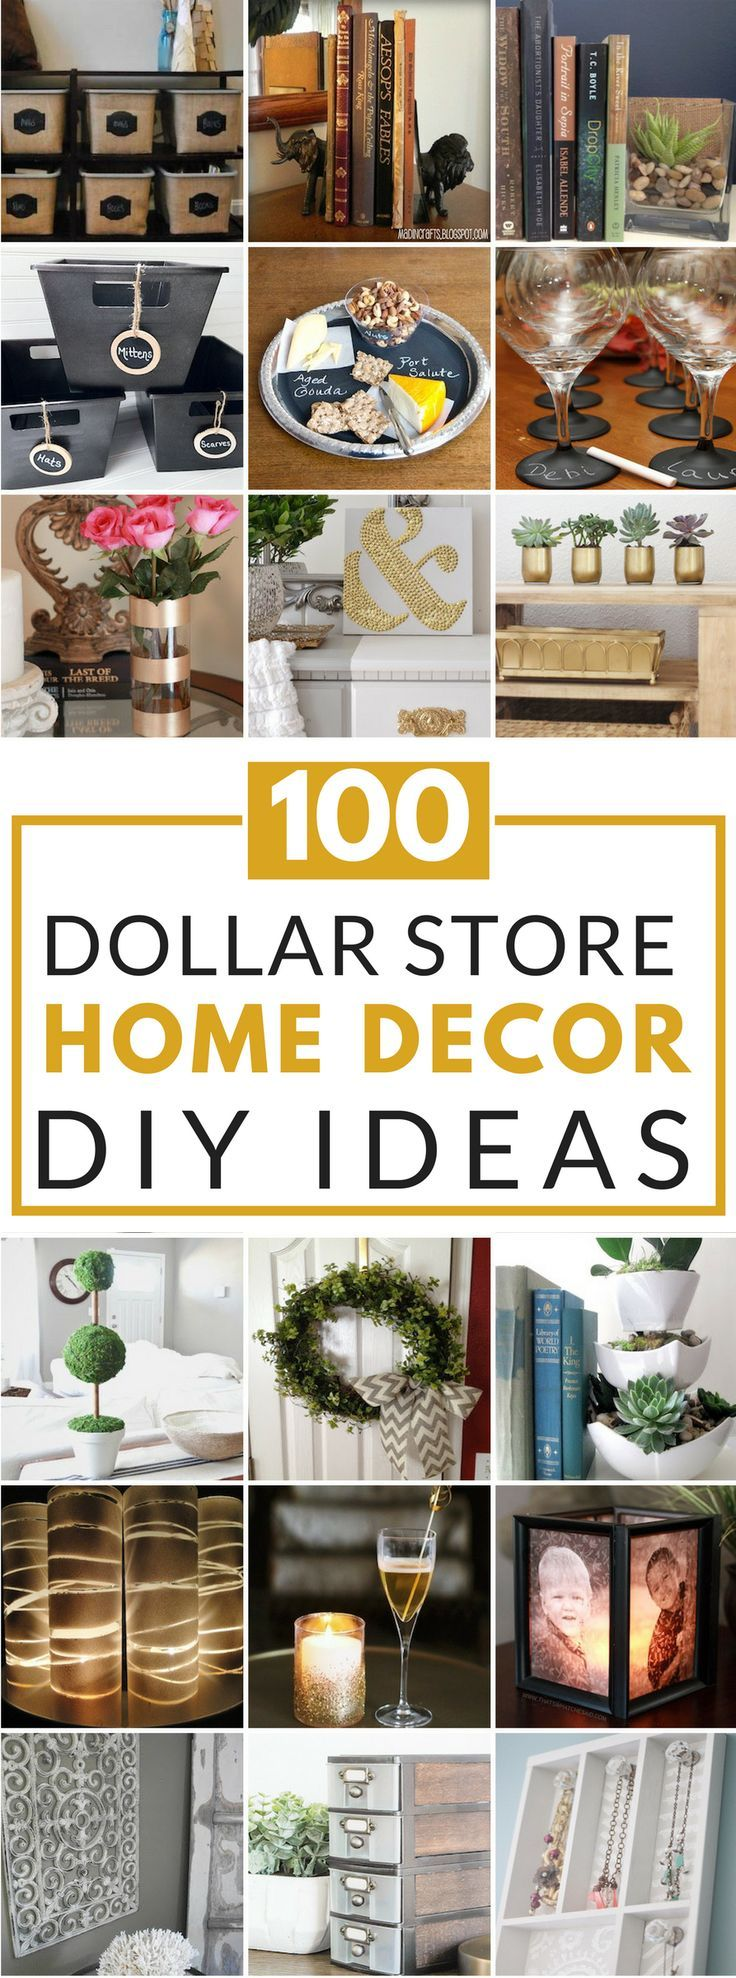 best 25+ dollar store decorating ideas on pinterest | dollar